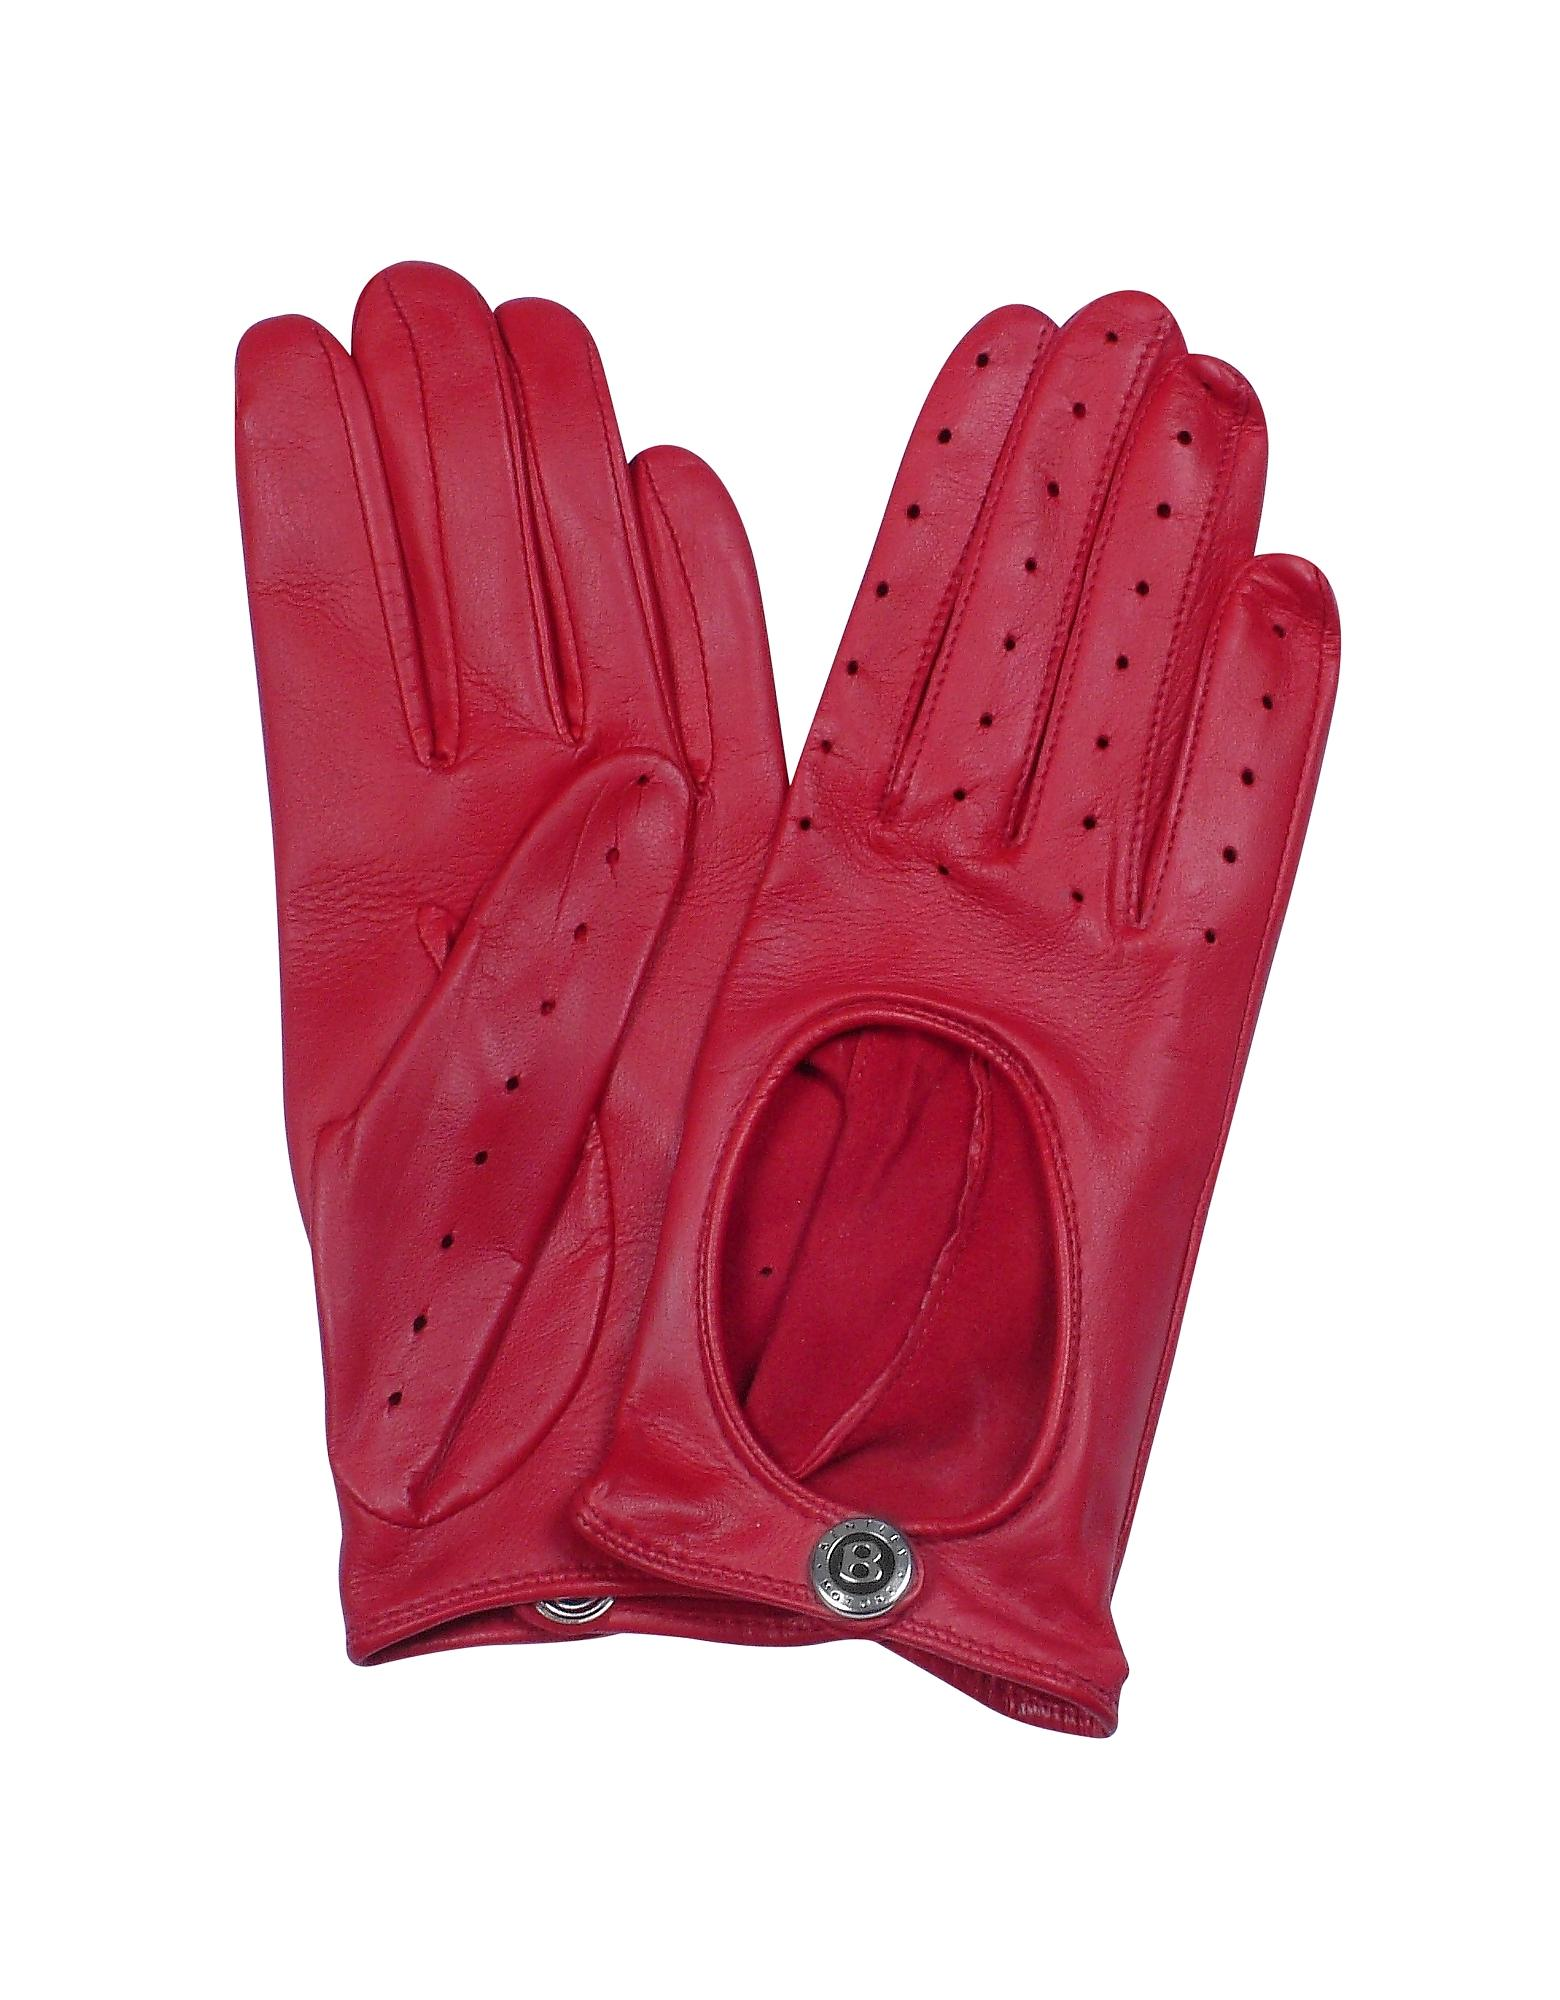 Pittards ladies leather gloves - Bentley Women S Dents Pittards Cabretta Red Driving Ladies Gloves